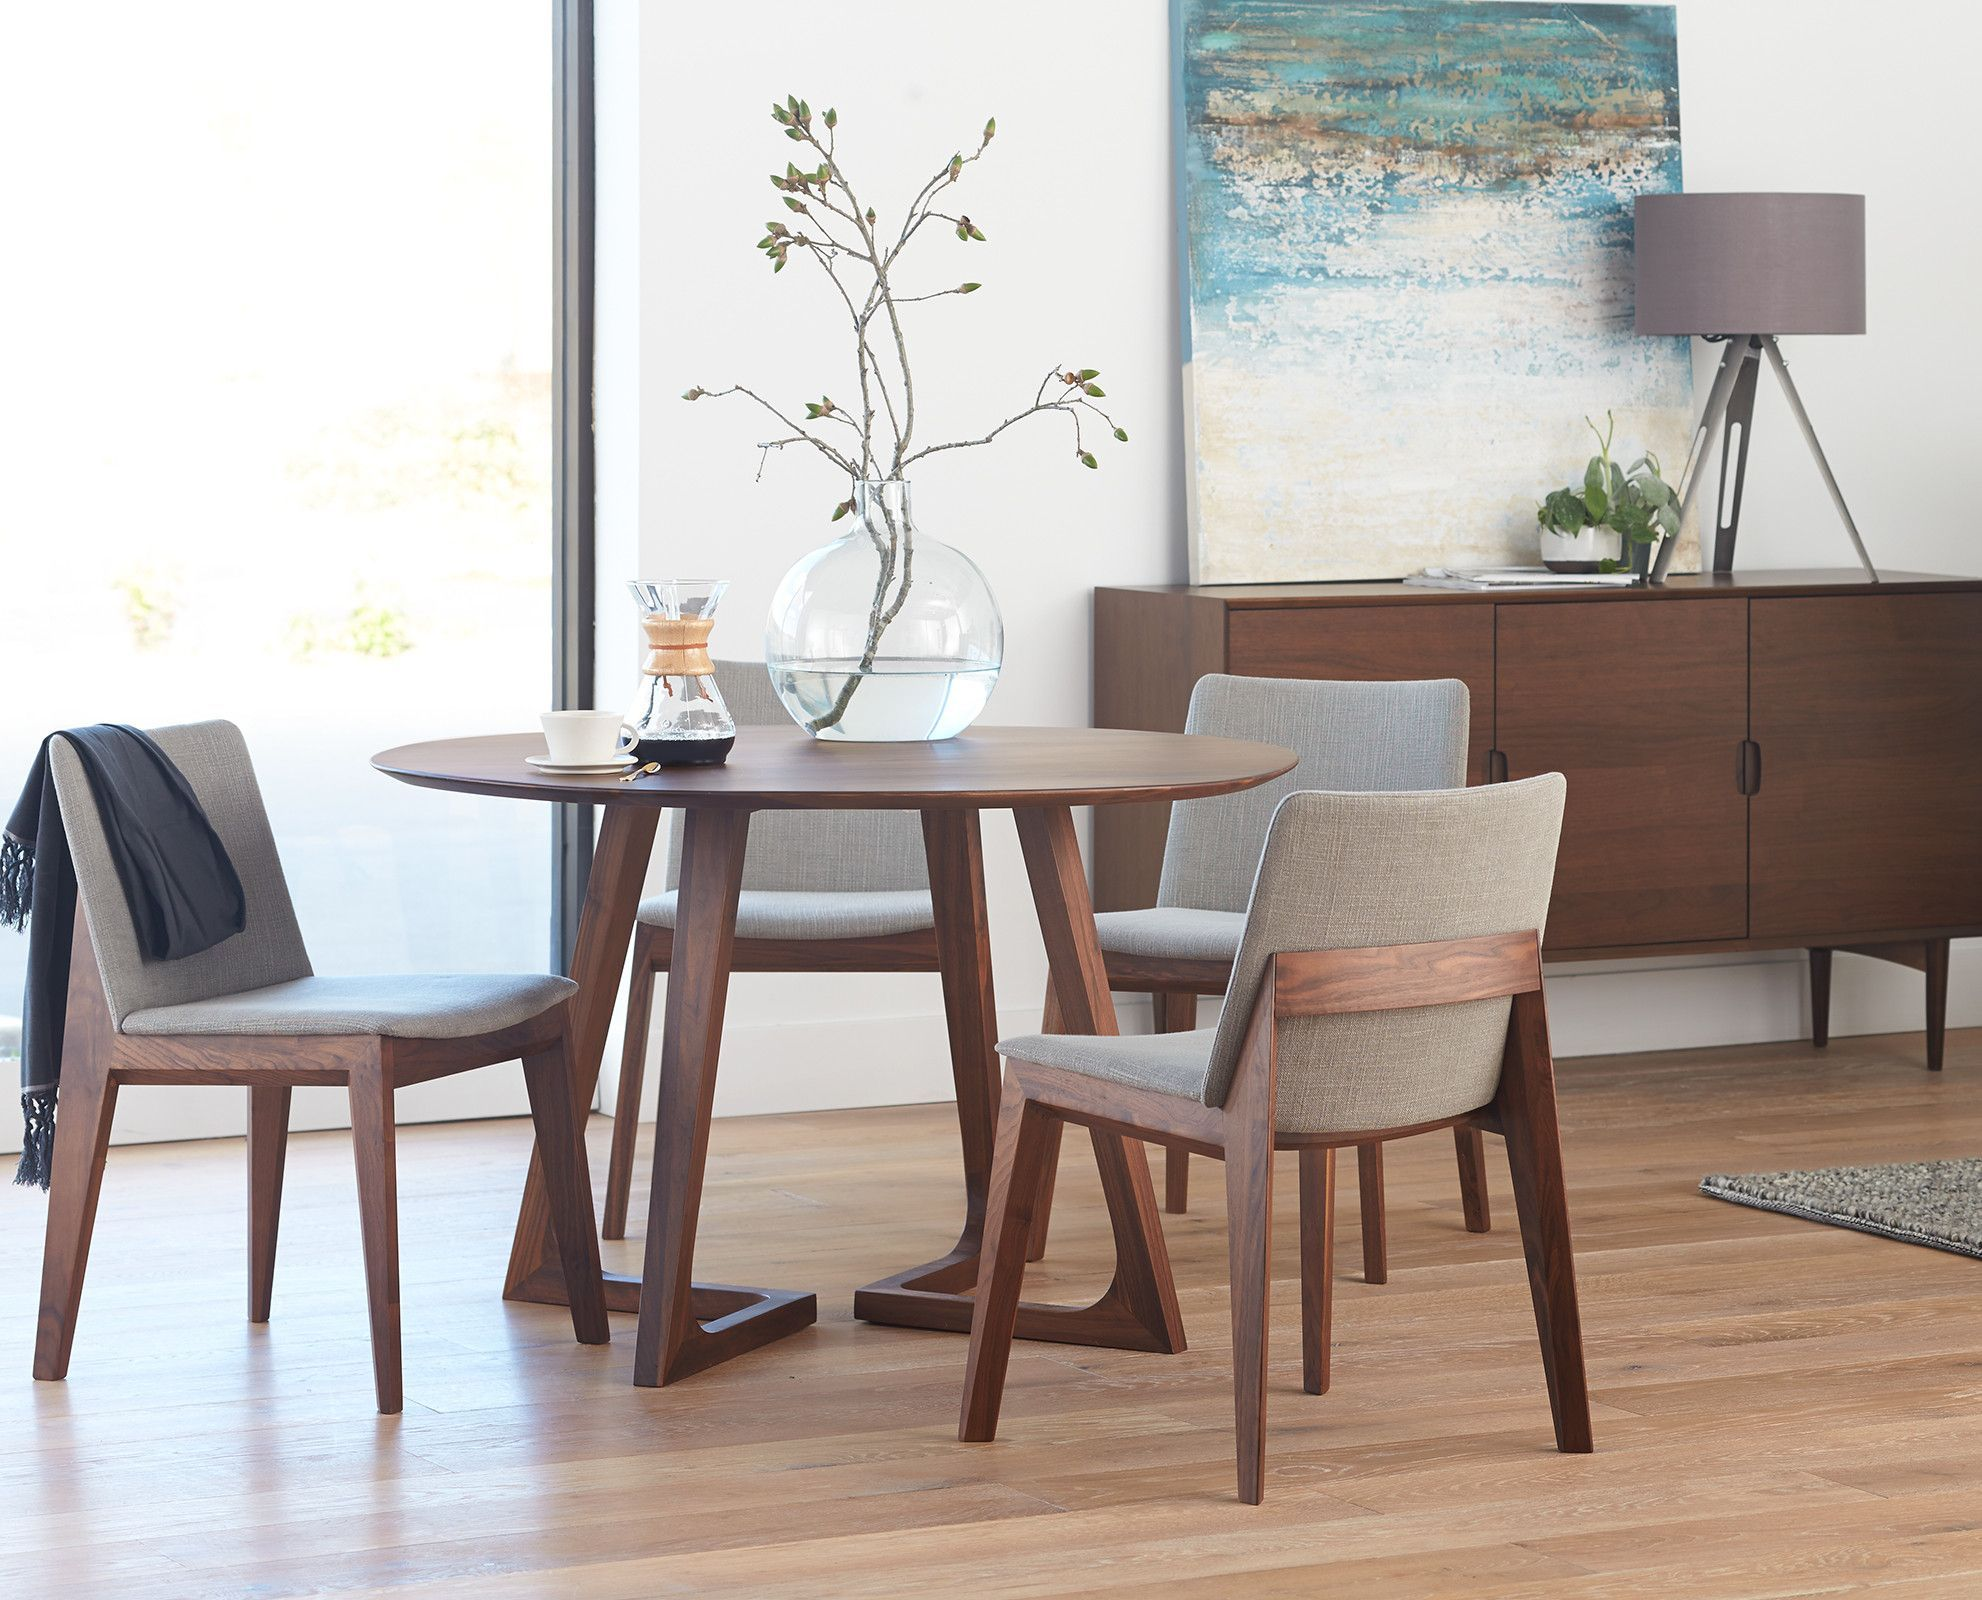 The Cress Round Dining Table Will Nurture Your Inner Perfectionist